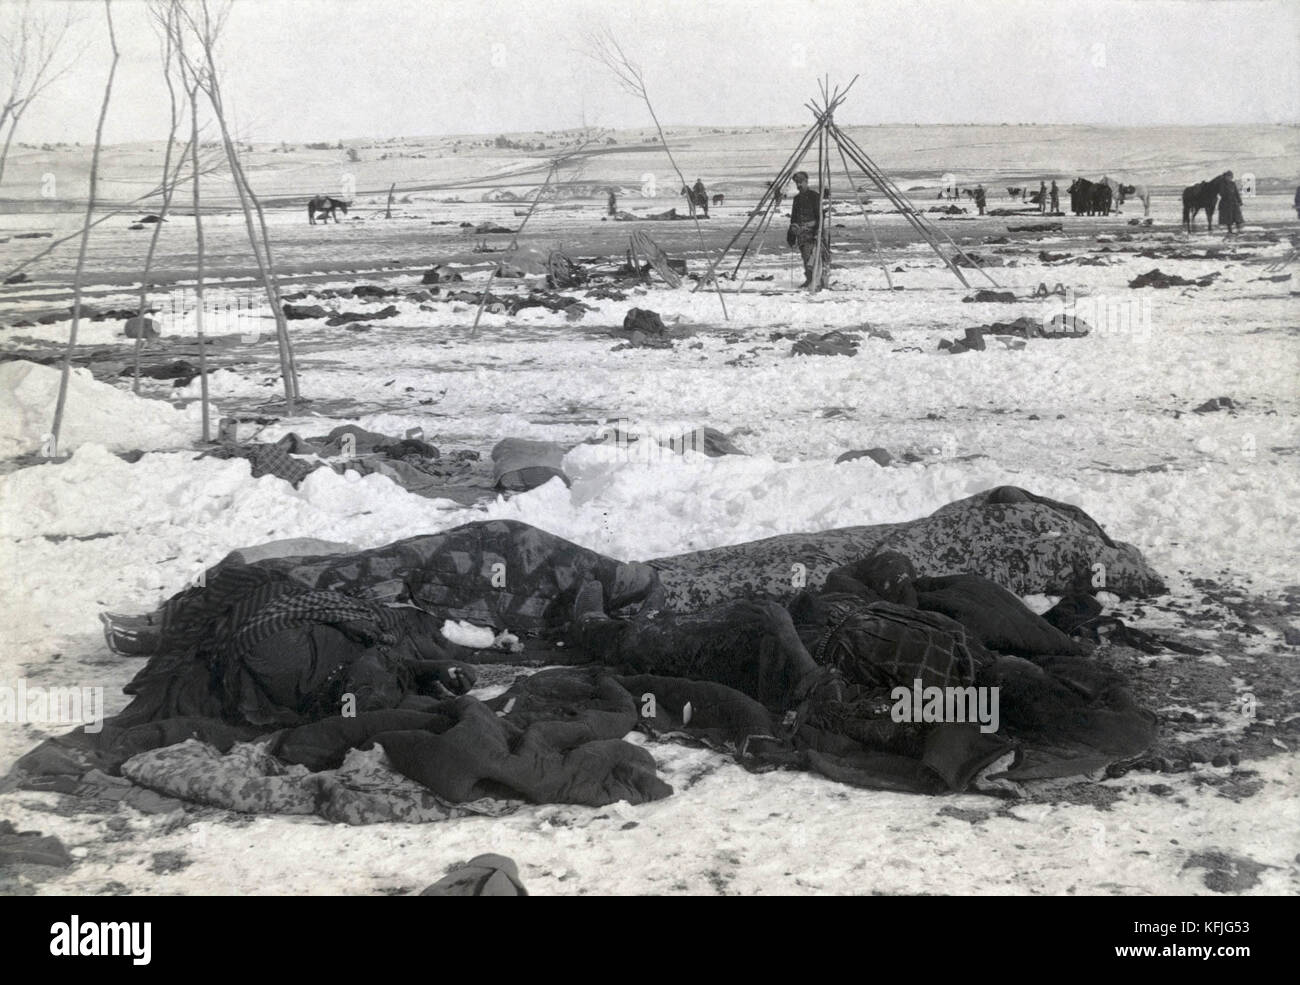 """""""Big Foot's camp three weeks after Wounded Knee Massacre; with bodies of four Lakota Sioux wrapped in blankets in Stock Photo"""